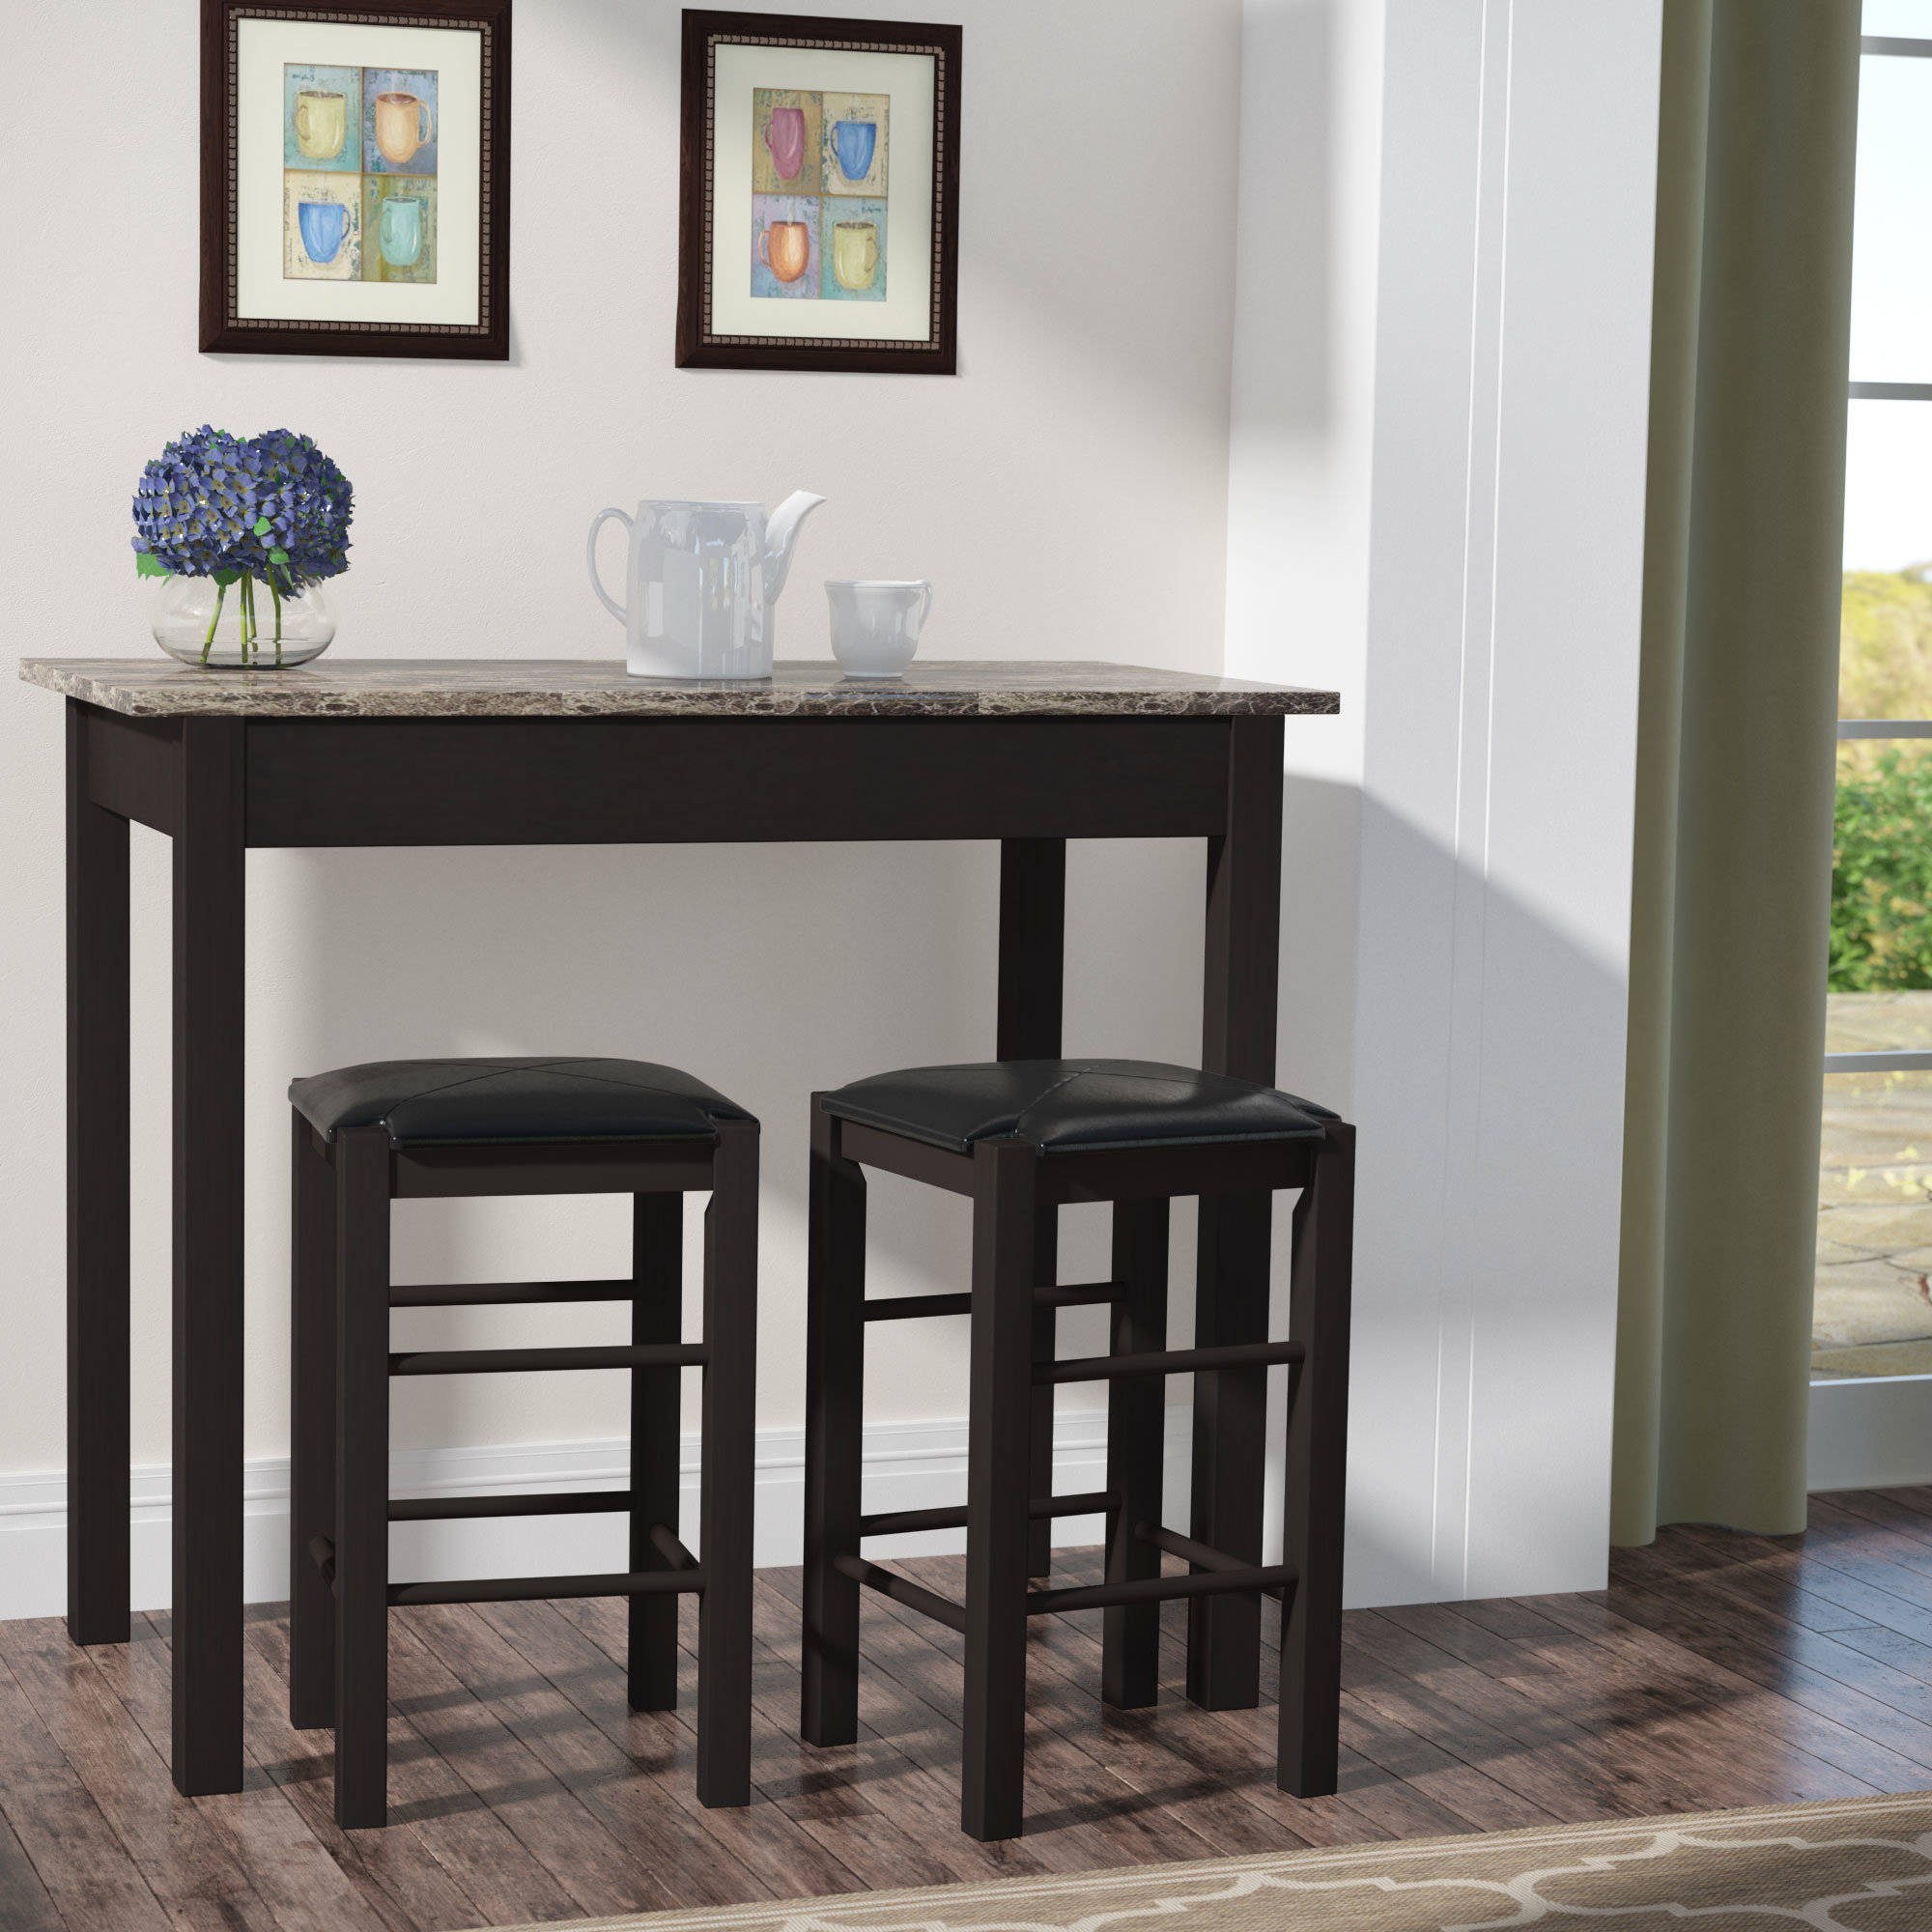 Miskell 3 Piece Dining Sets Regarding Most Current Winston Porter Sheetz 3 Piece Counter Height Dining Set & Reviews (#9 of 20)